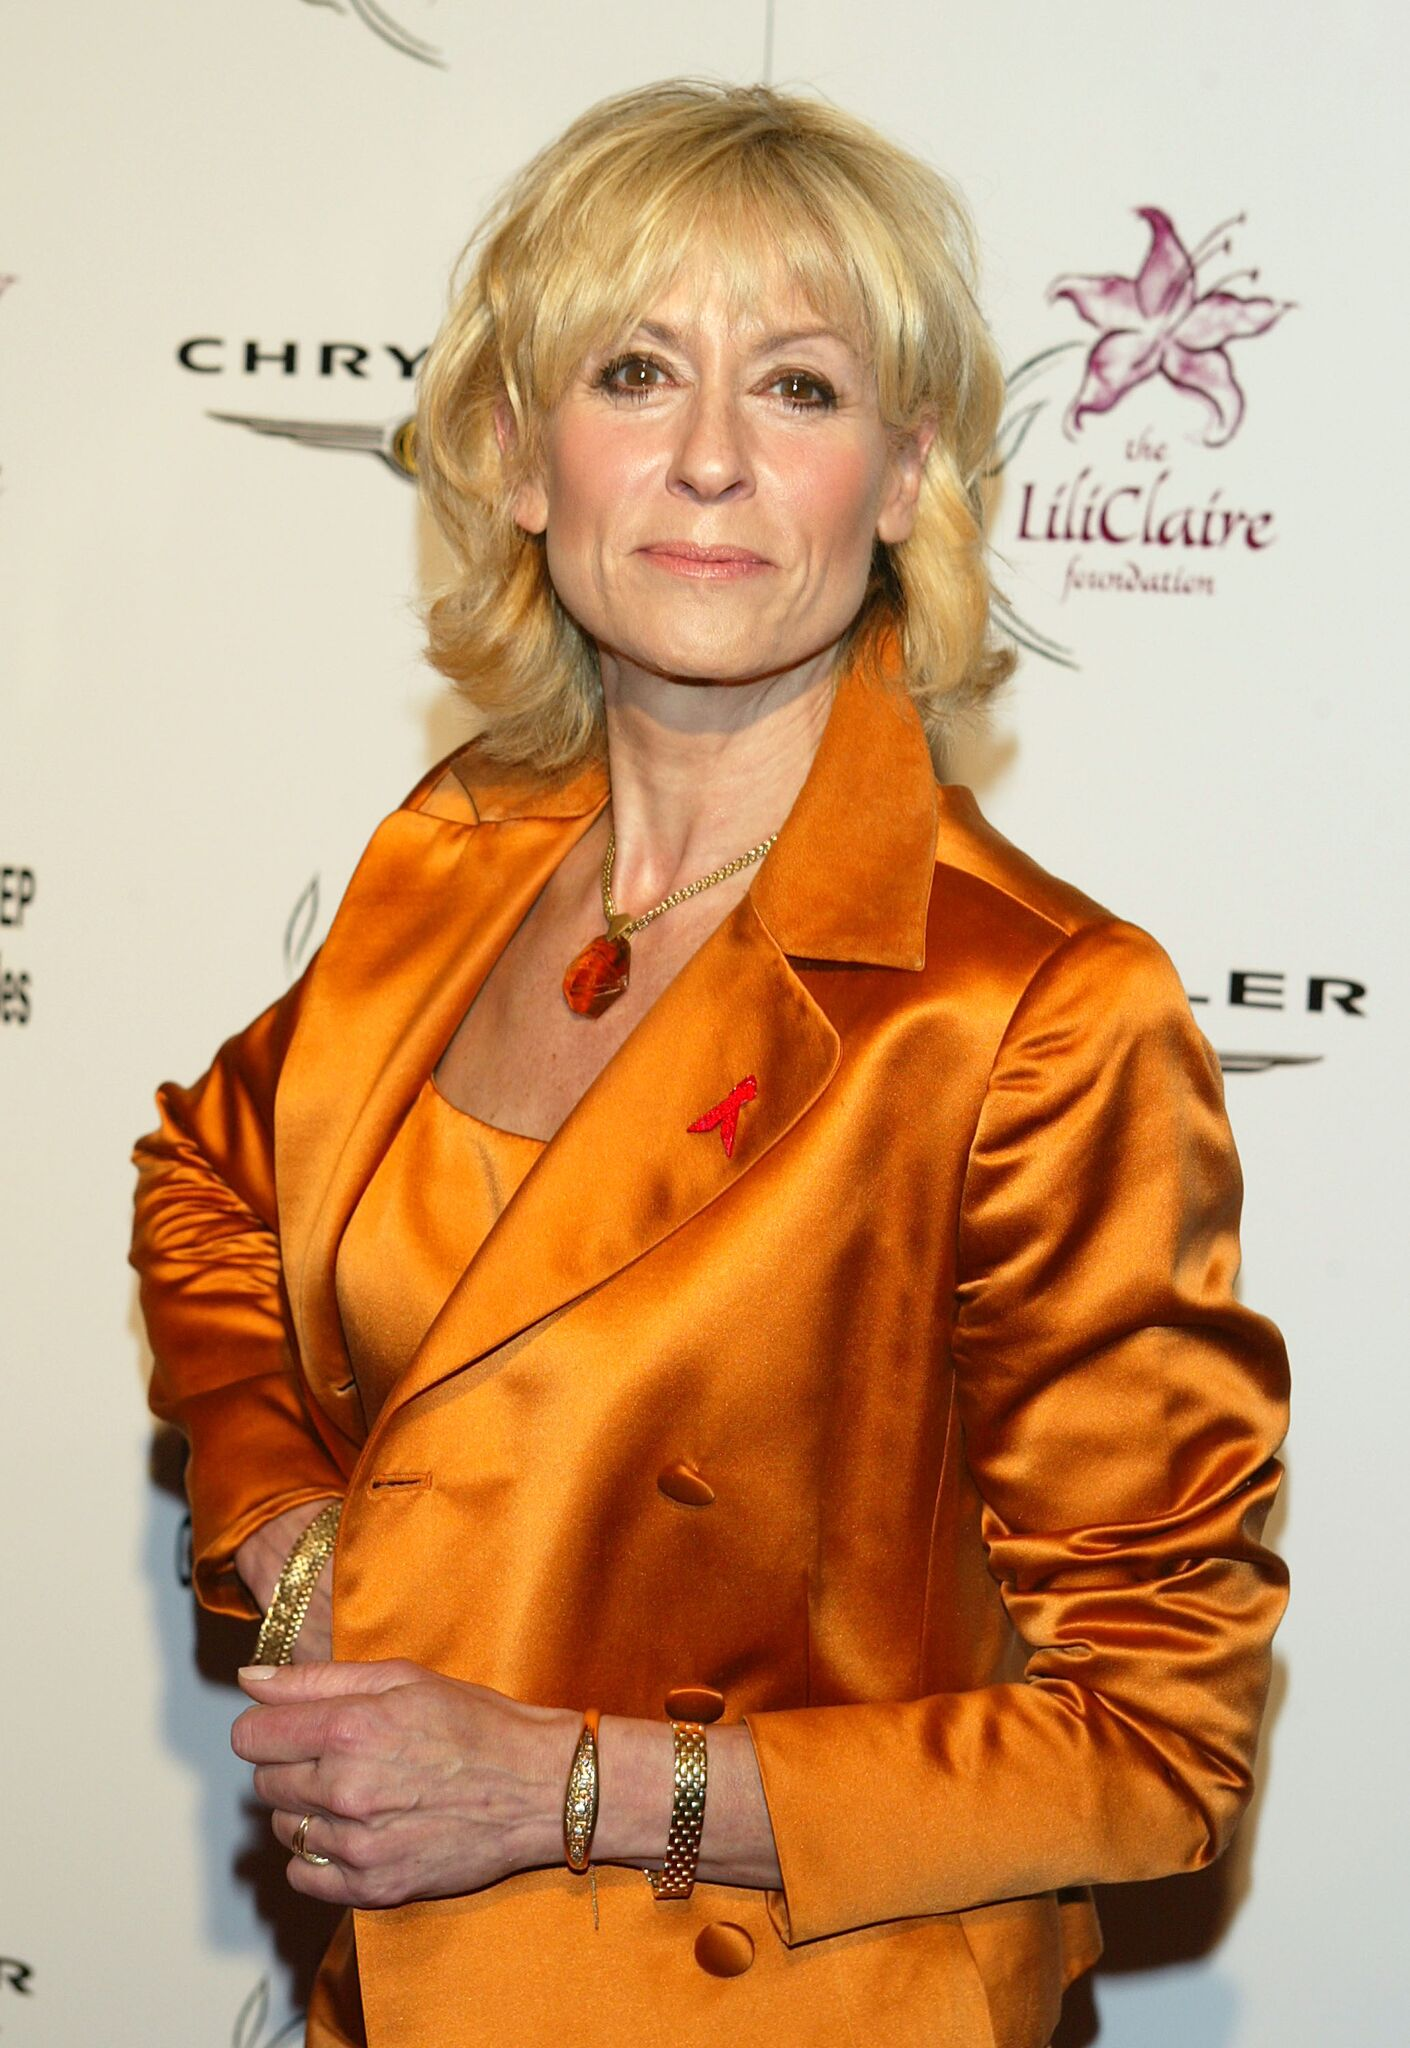 Judith Light arrives at The Lili Claire Foundation's 6th Annual Benefit at the Beverly Hilton Hotel | Getty Images / Global Images Ukraine